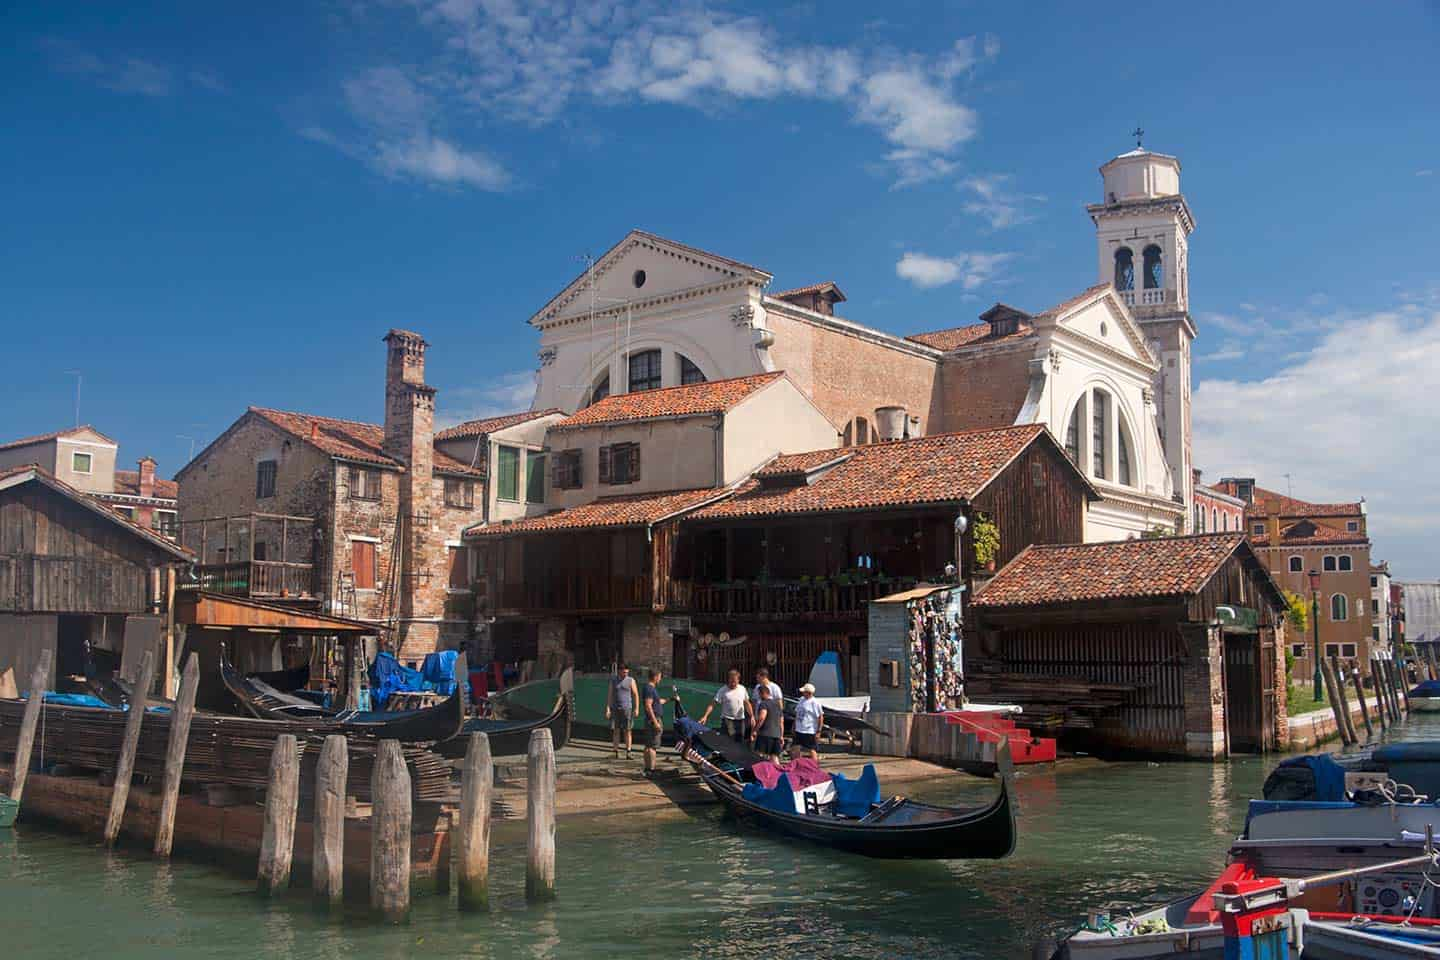 Image of the Squero di San Trovaso boatyard in Venice